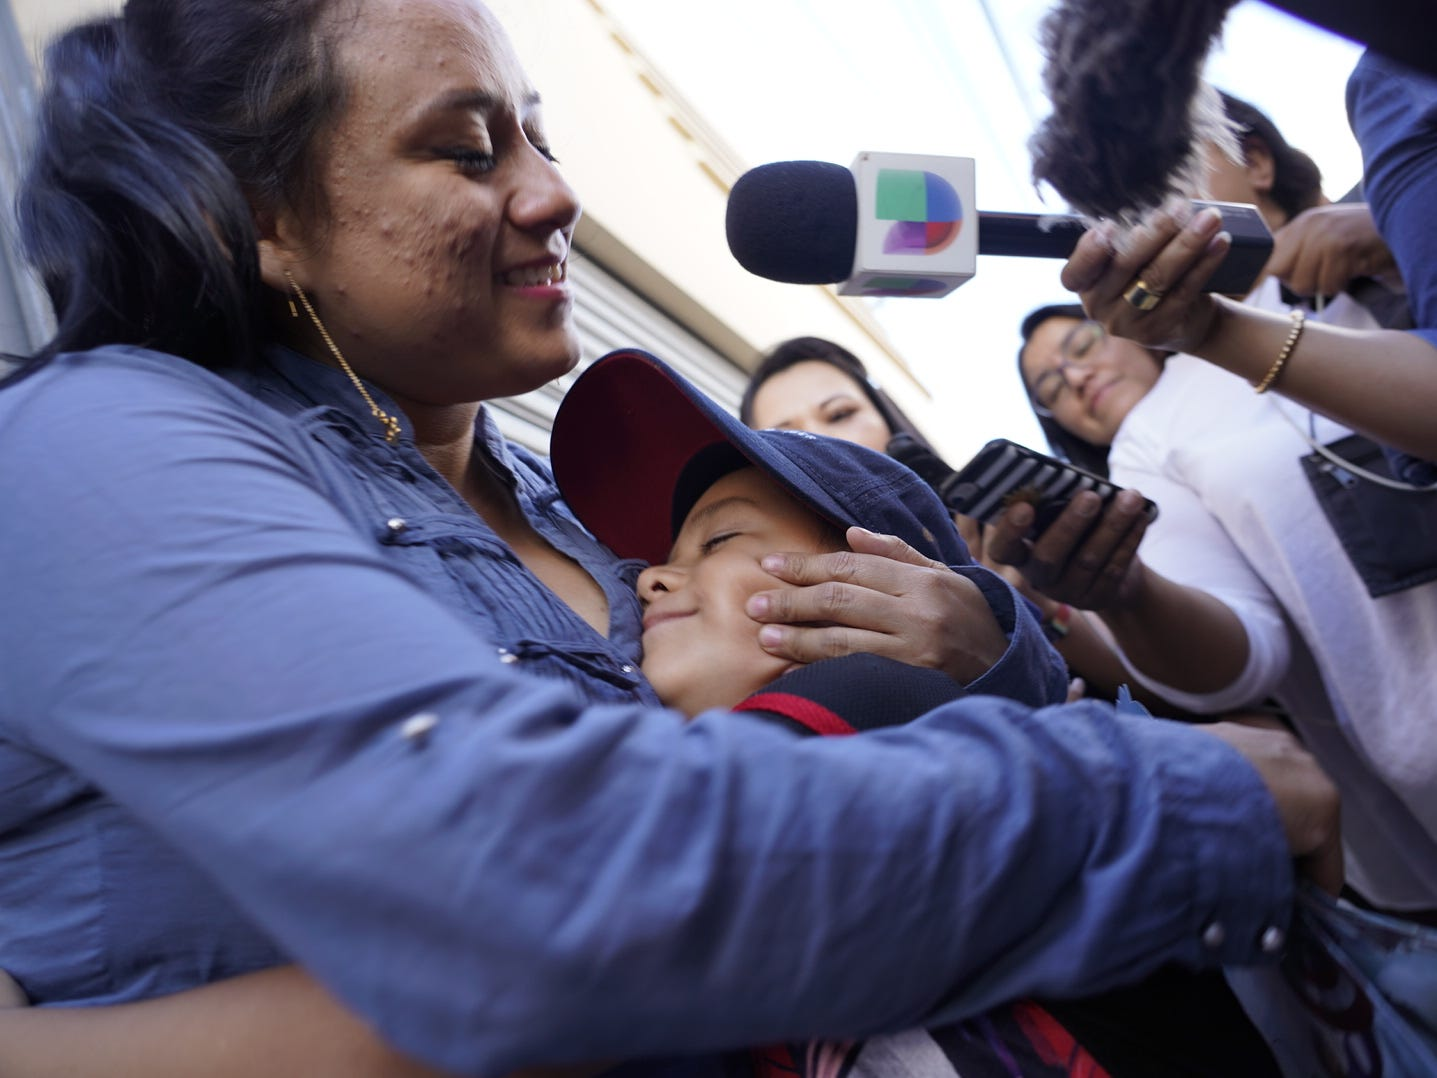 Lourdes Marianela De Leon reunites with her son Leo after months of separation. De Leon was deported to Guatemala without her 6-year-old son and hasn't seen him for over a month after he was taken from her by CBP officials two days after they entered the US illegally near San Luis, Arizona in May. Leo remained in the U.S. in a shelter in New York, along with about 240 other children separated from their parents under the Trump administration's zero-tolerance policy.